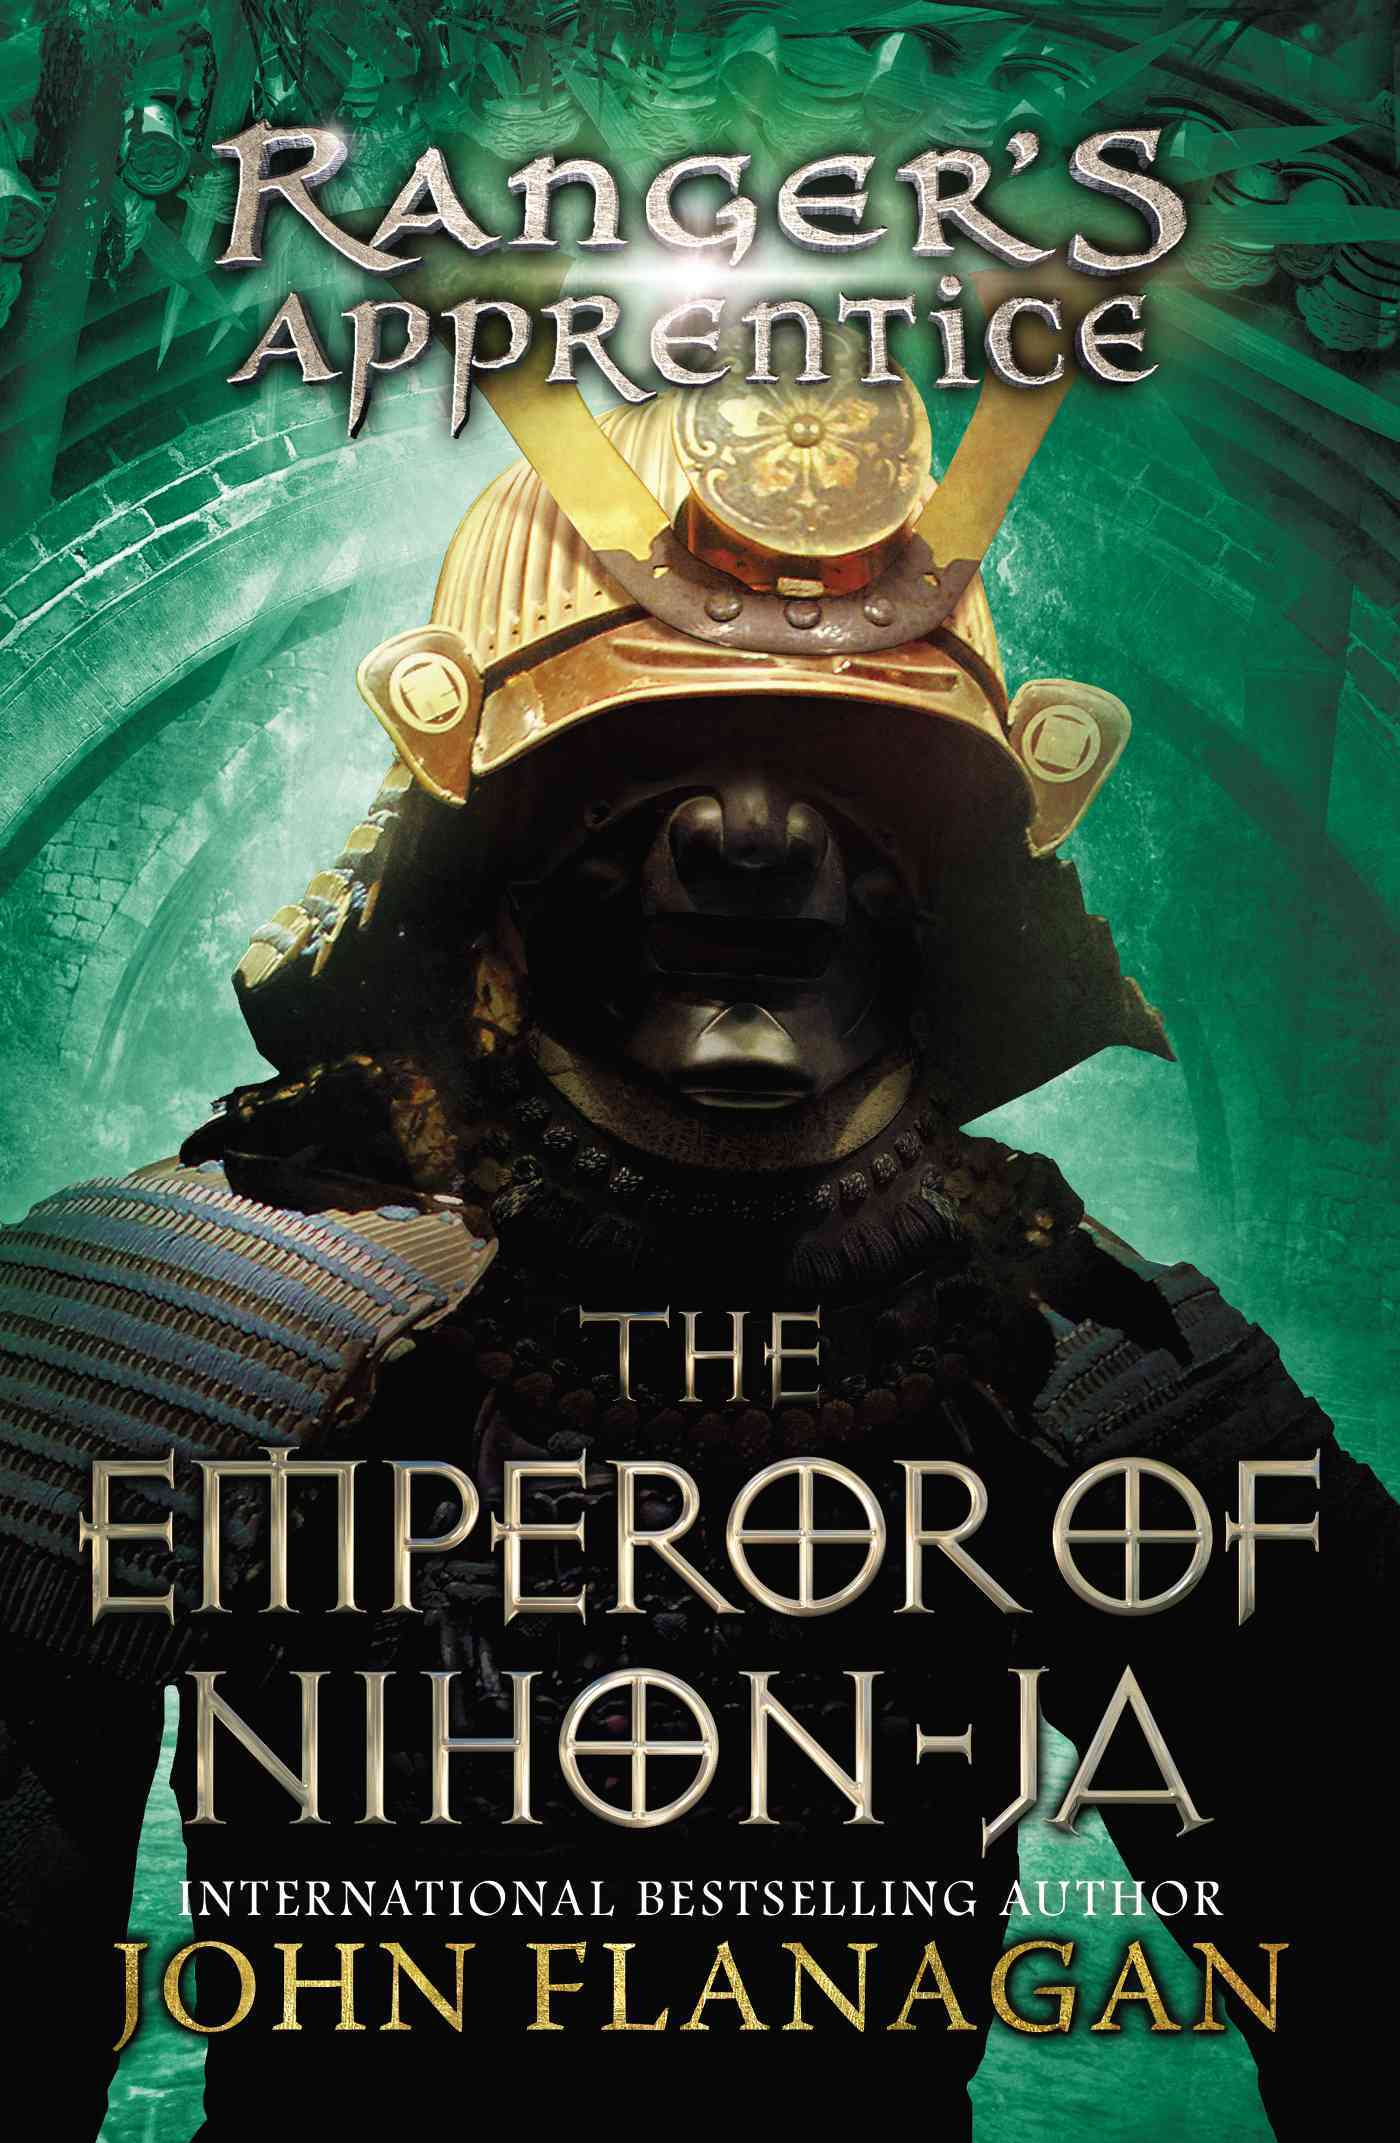 The Emperor of Nihon-ja (Paperback) - Thumbnail 0